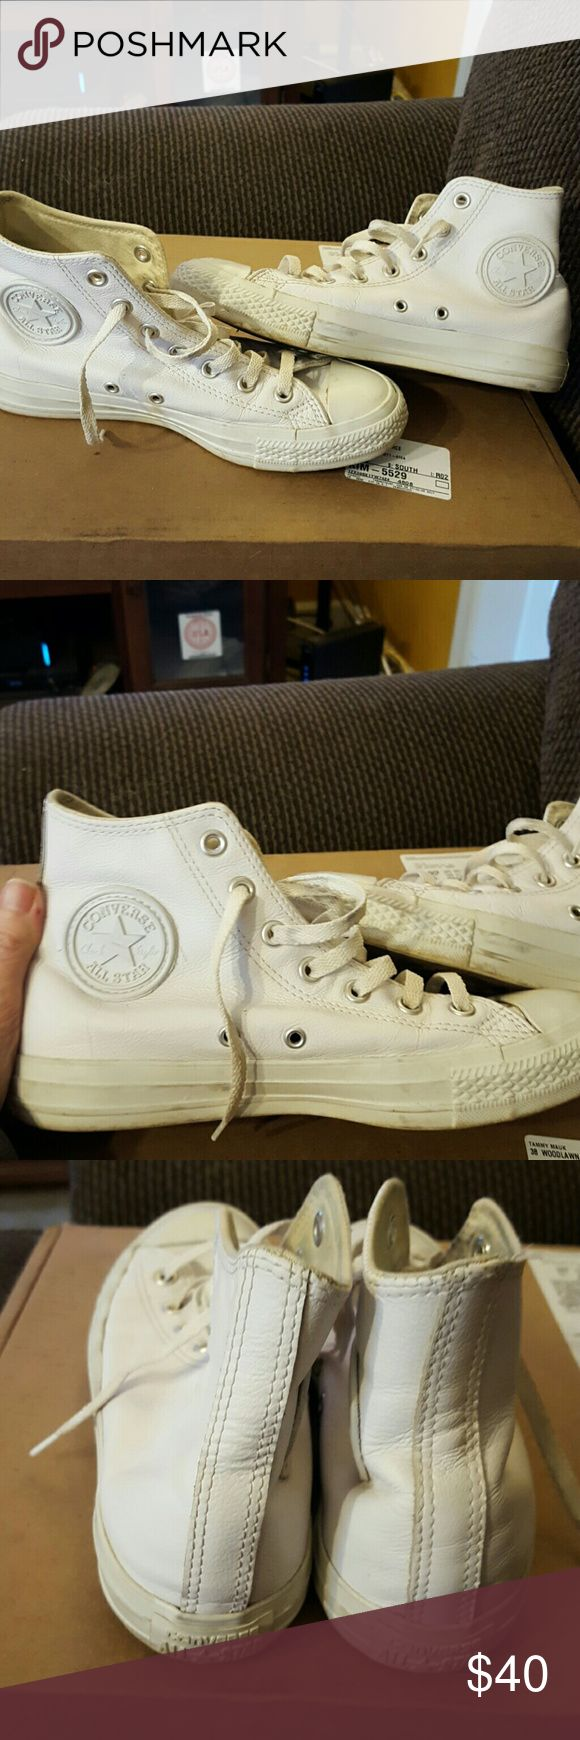 Leather Converse High Tops White Leather, they are in awesome condition. Like new. Converse Shoes Athletic Shoes